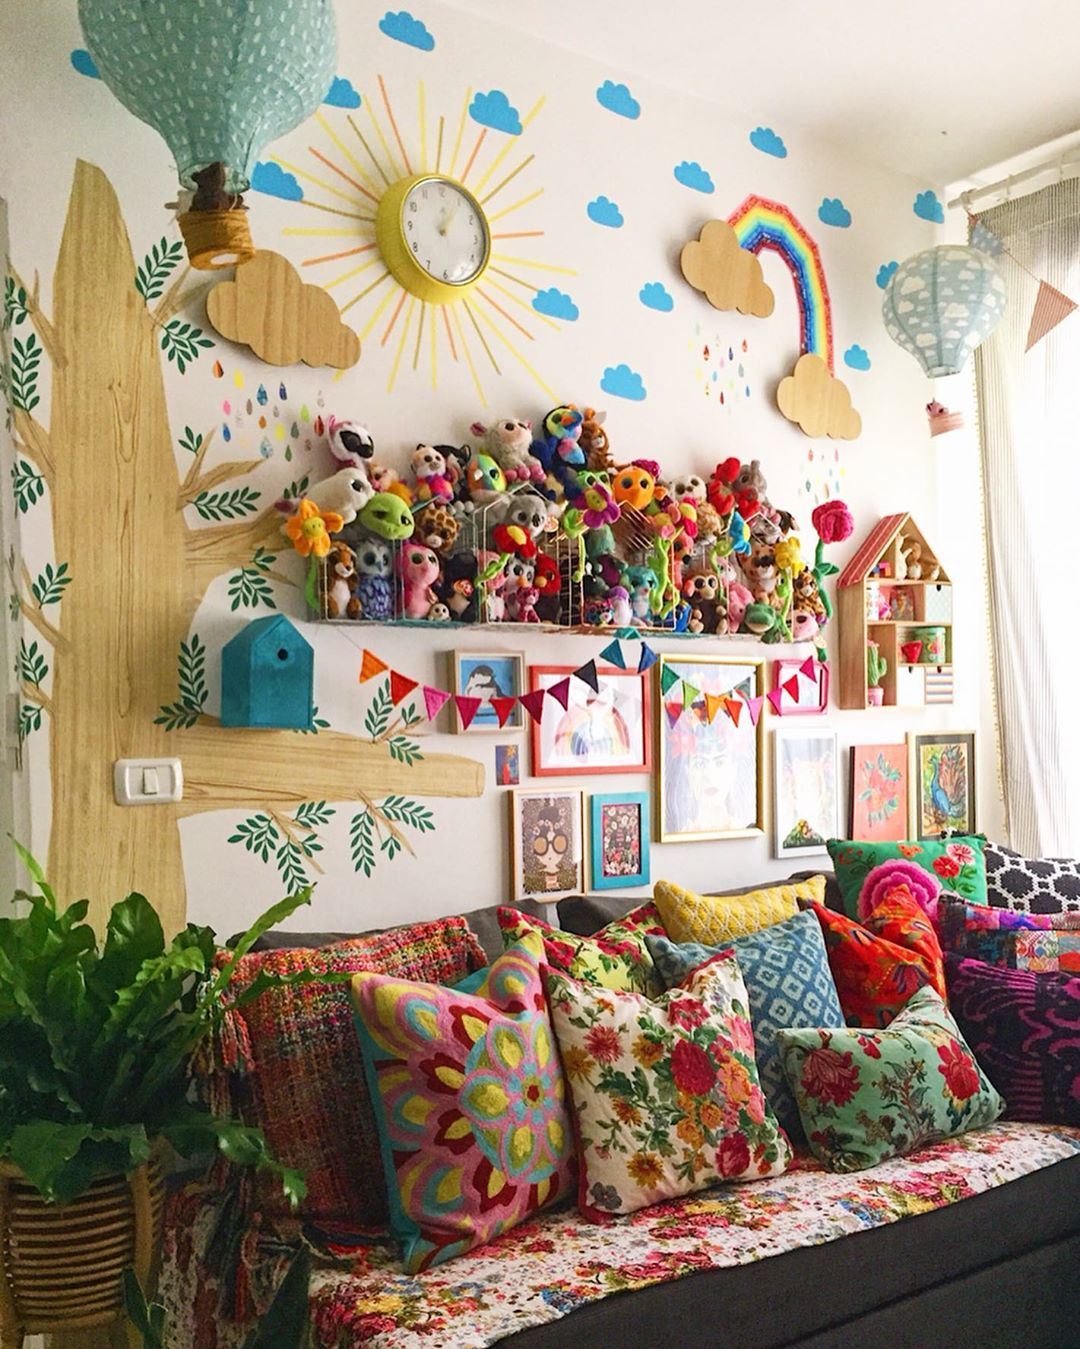 room filled with pillows and stuffed animals